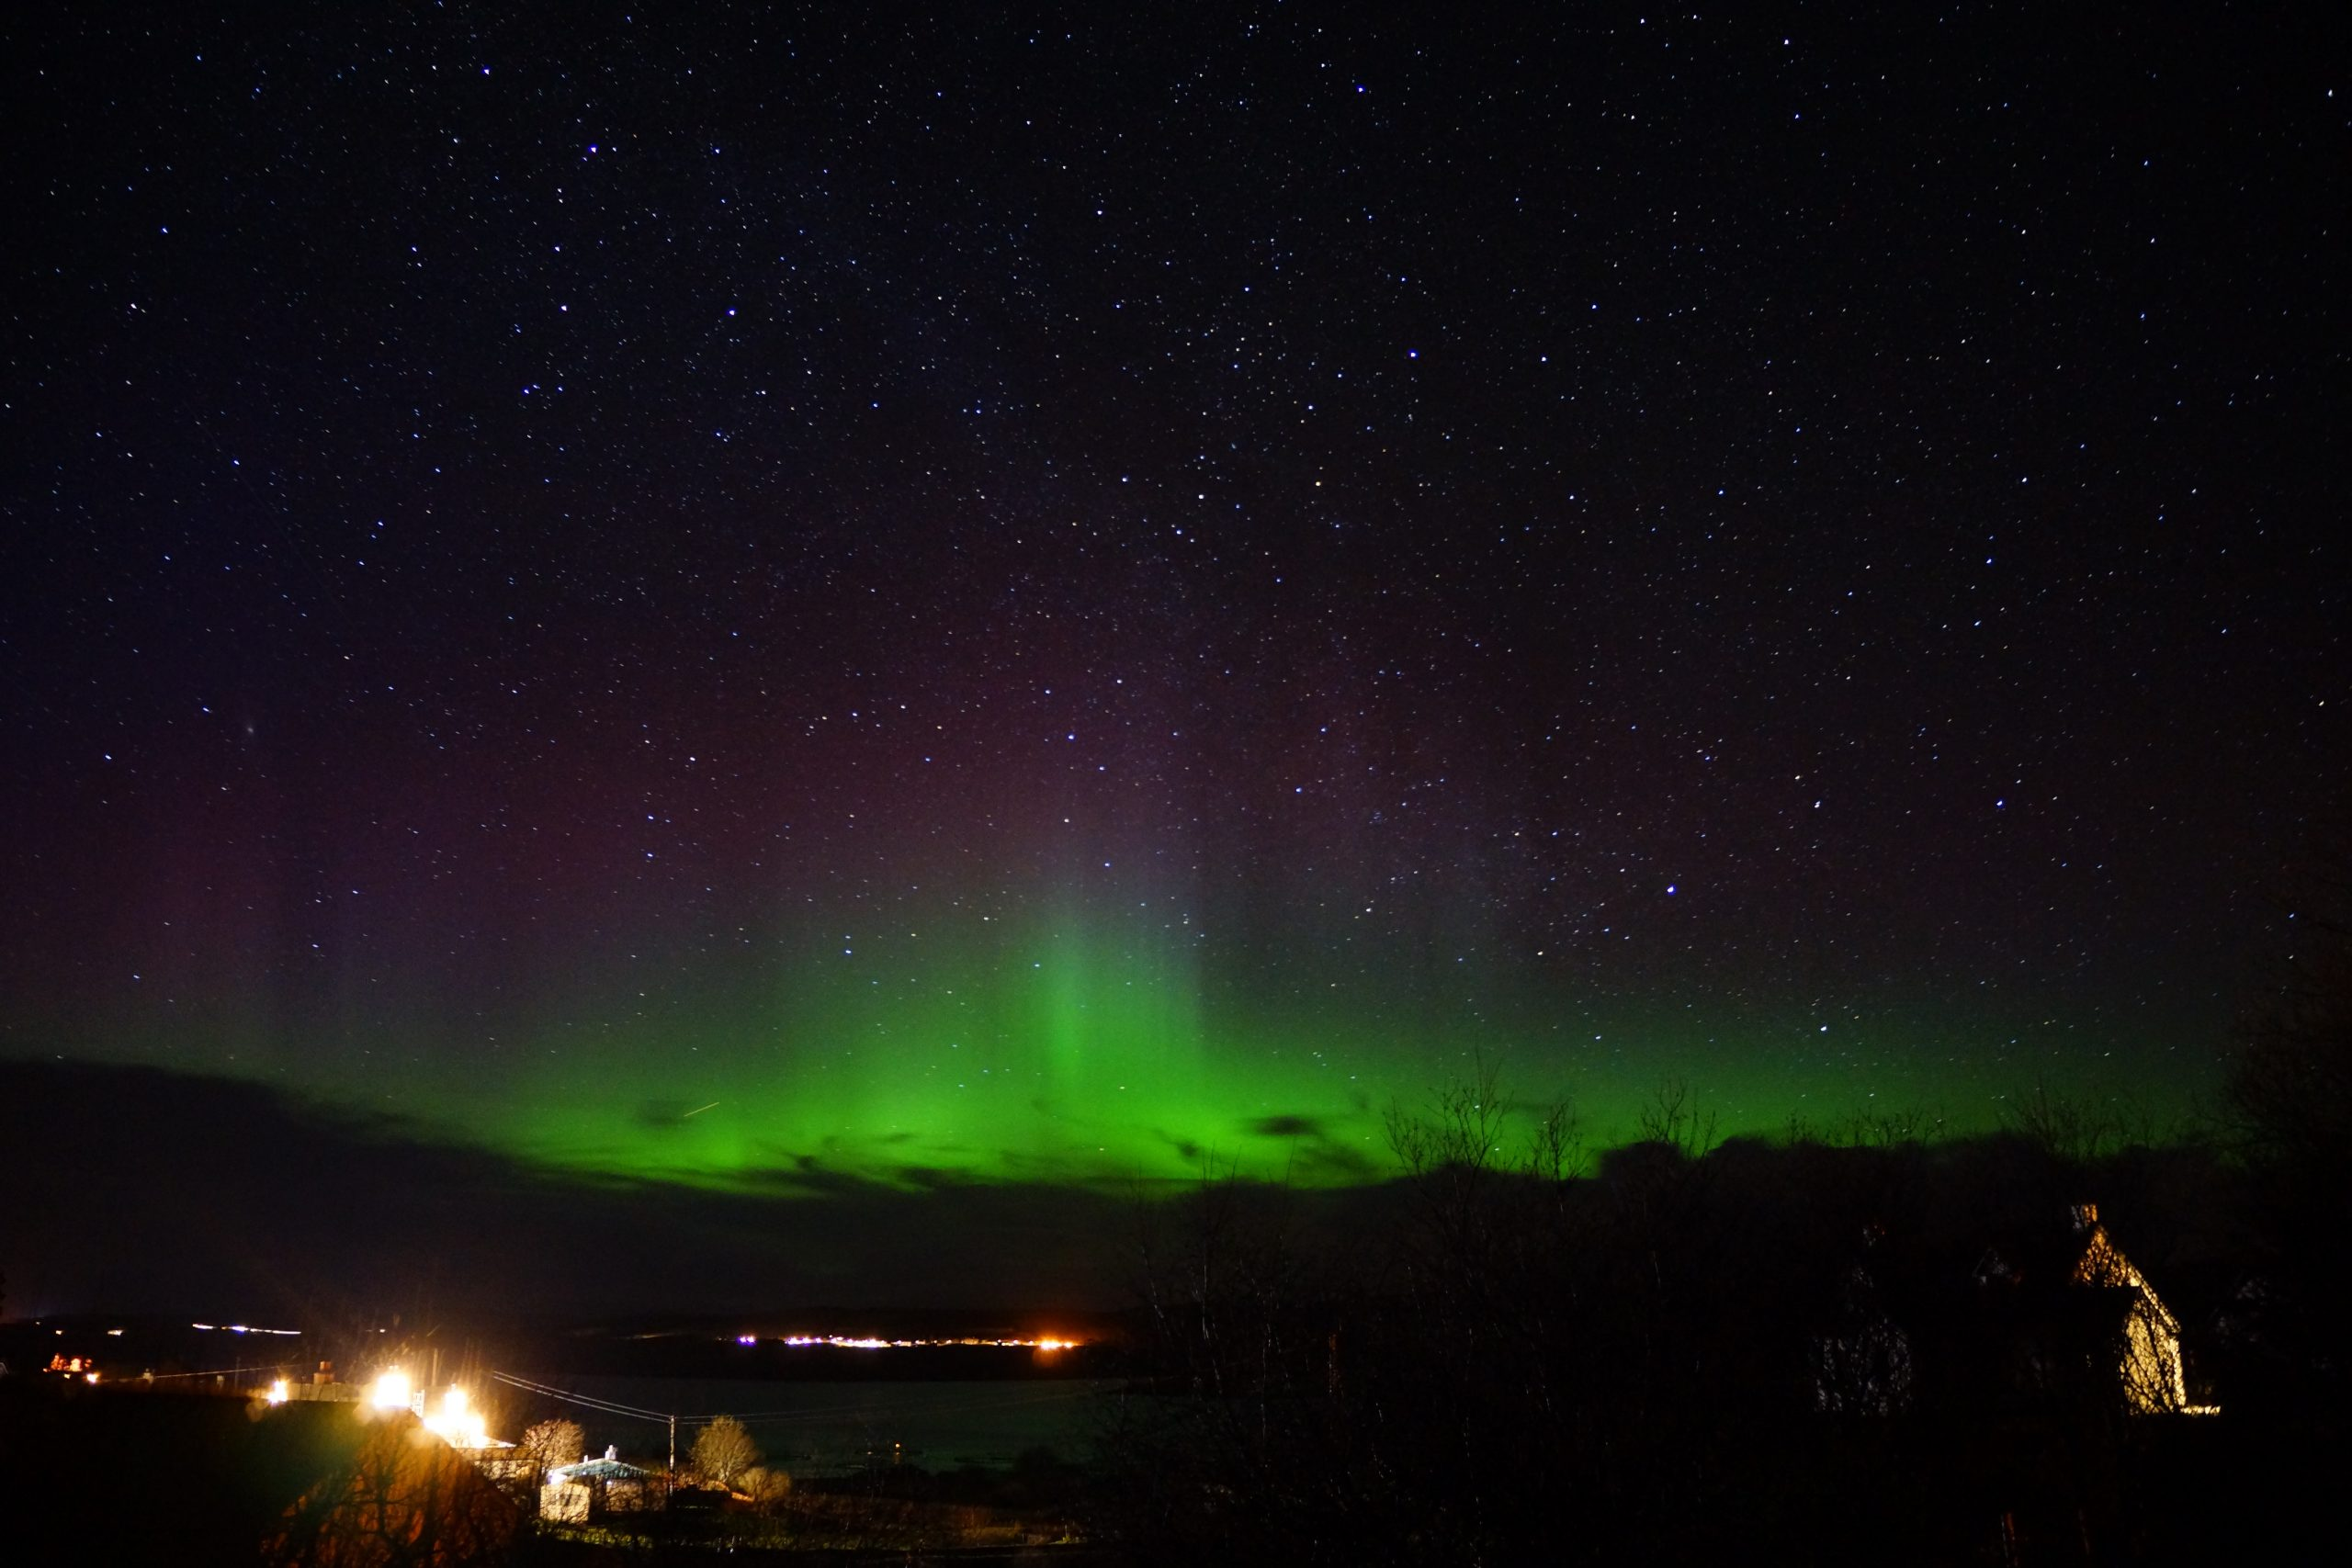 aurora over the hotel Nothern lights in November photo used with permission Arlyn Thursby